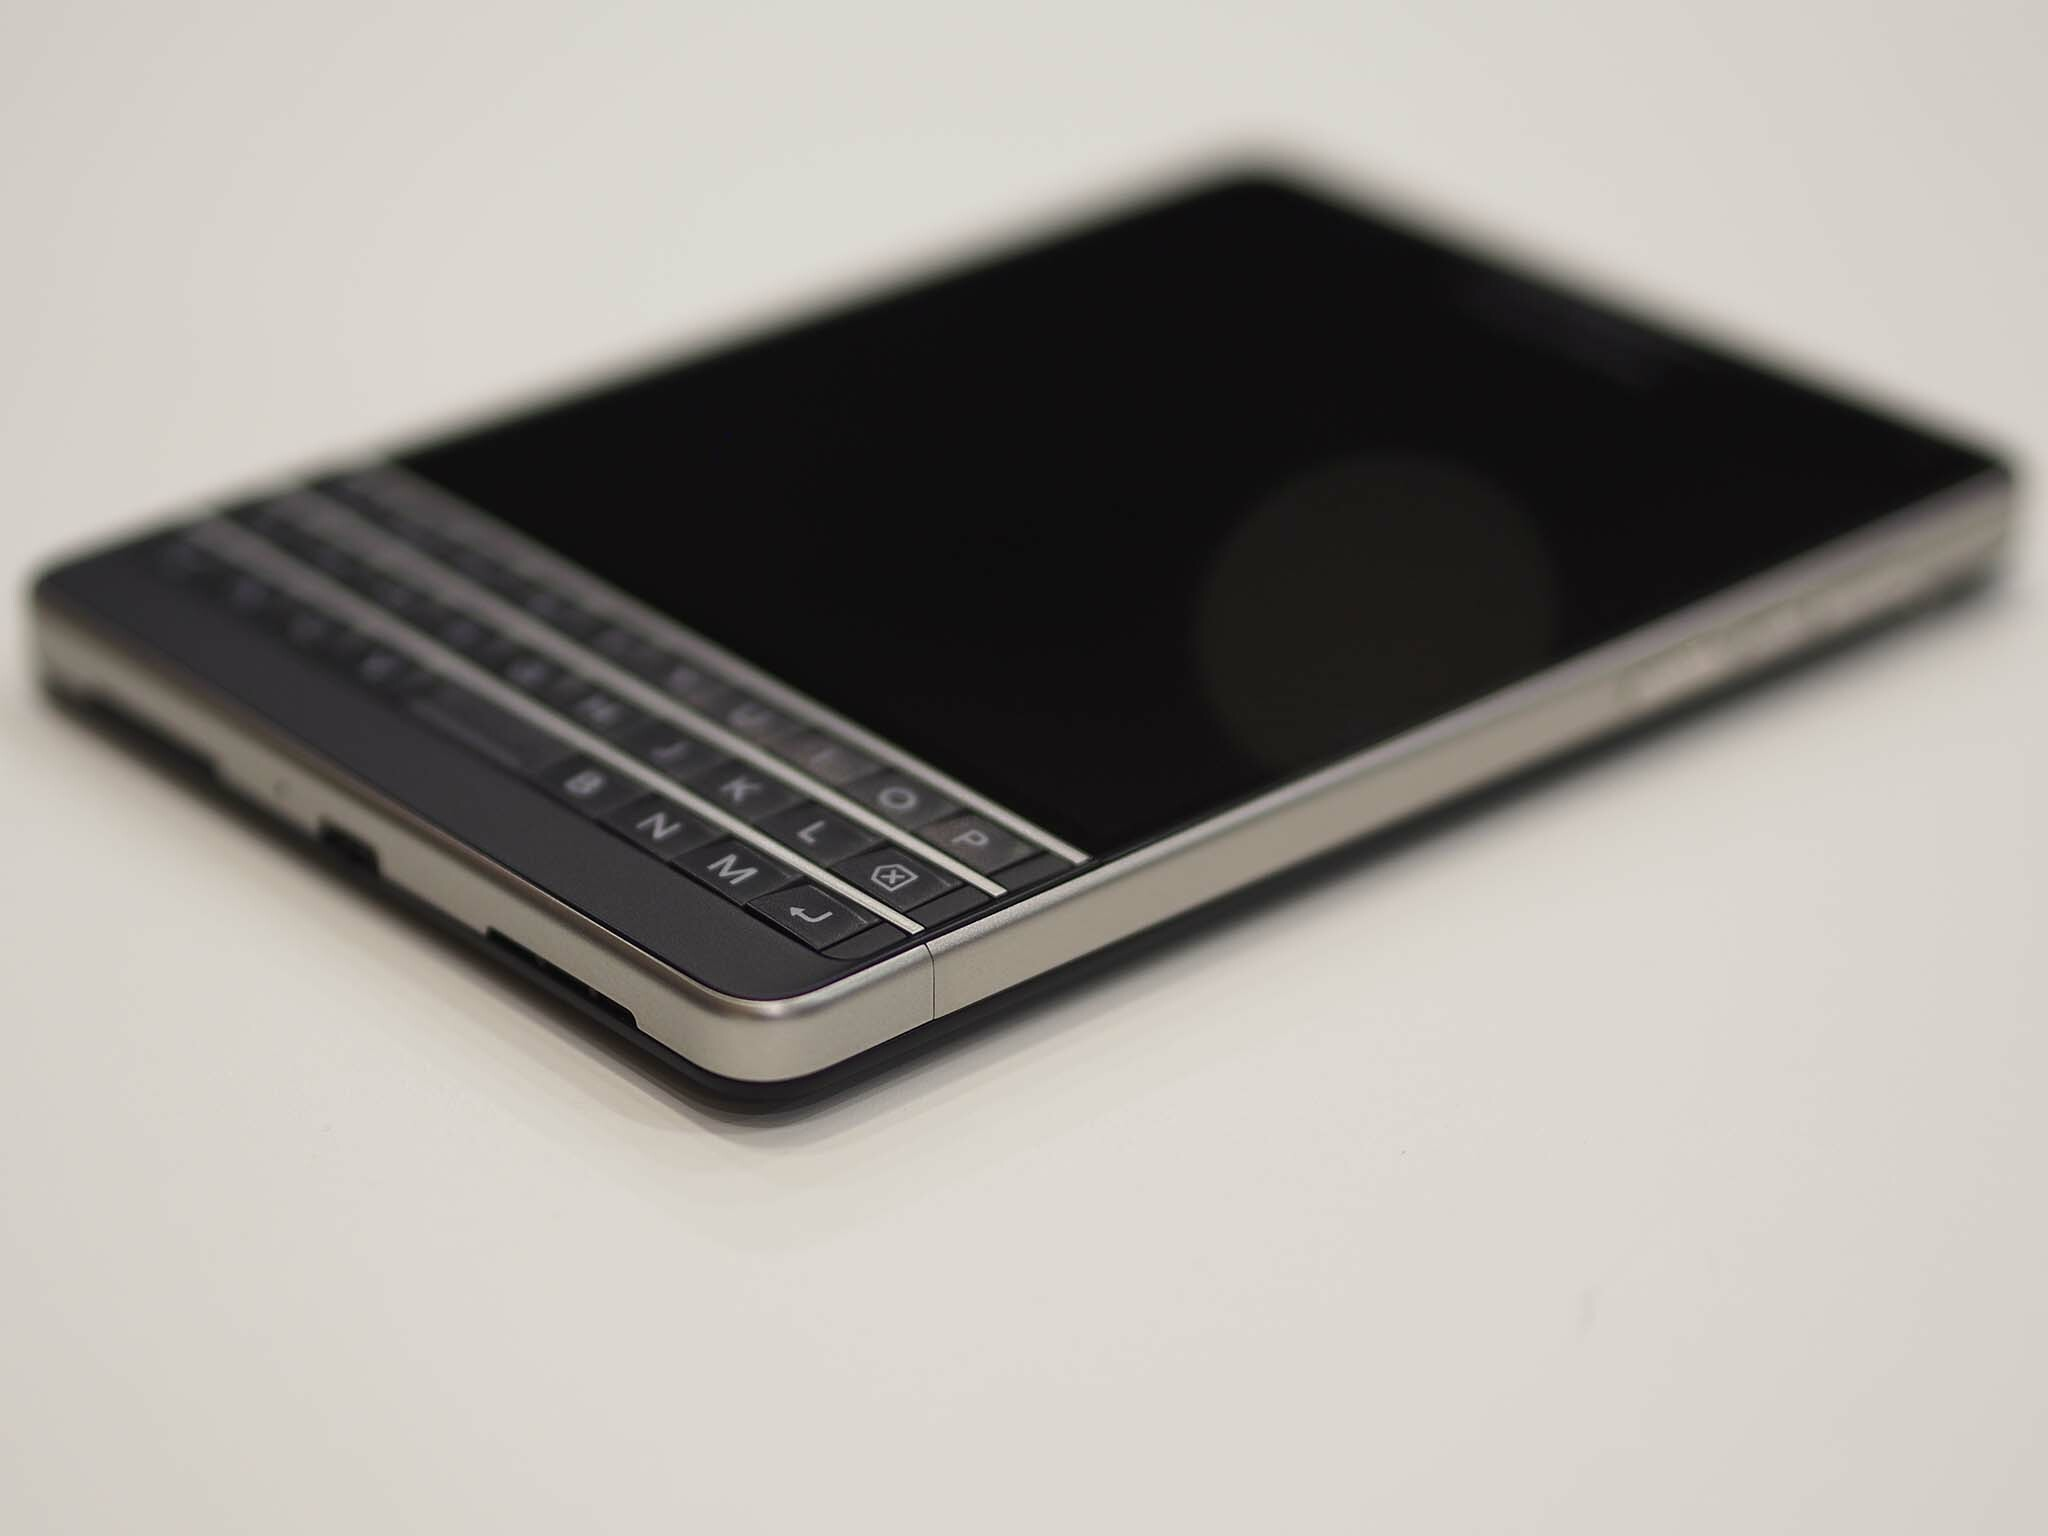 Hands-on with AT&T's redesigned BlackBerry Passport